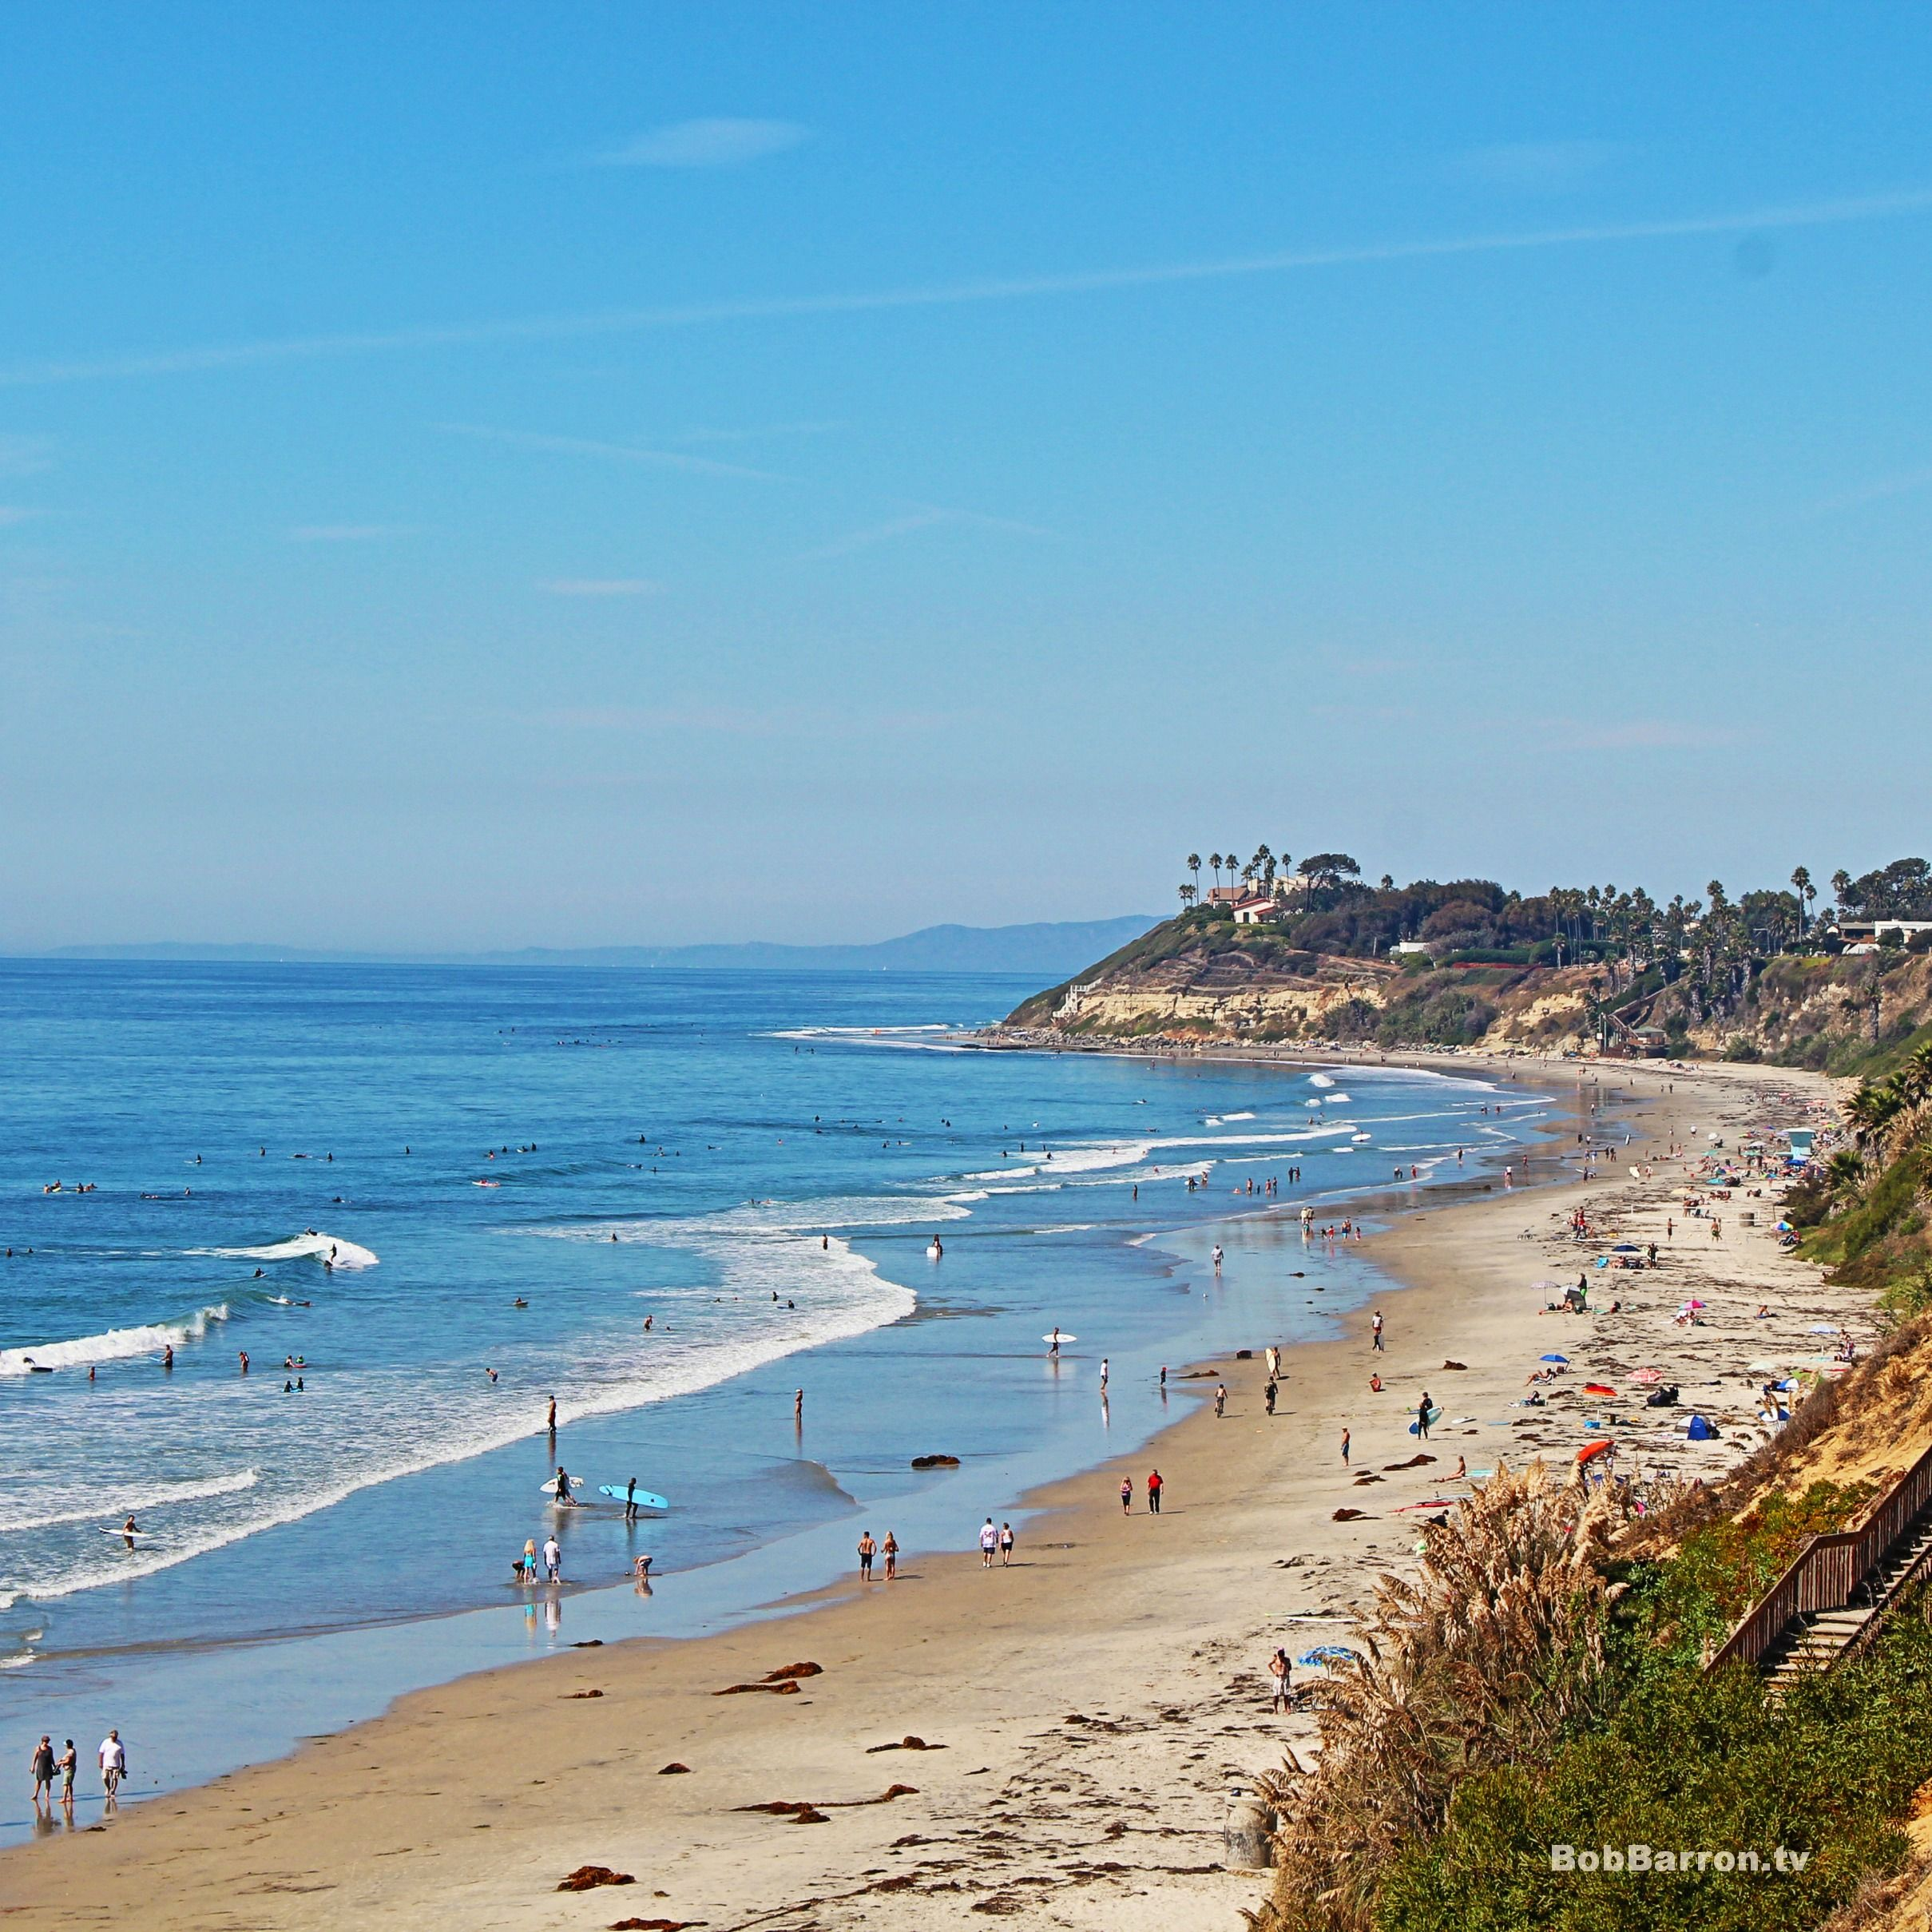 Cardiff State Beach located in #Encinitas California is a really ...